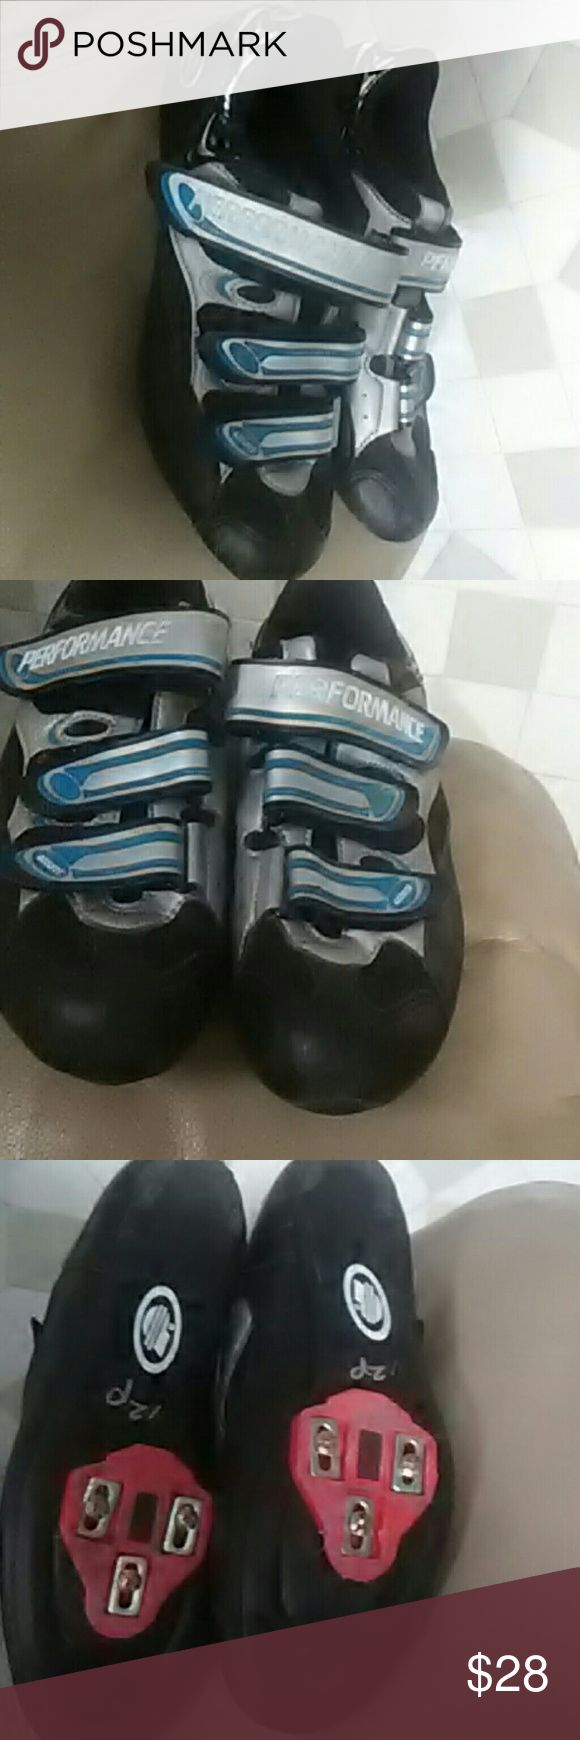 Performance sz9 Azzurri Road Bike Shoes, -? These are in great shape in a size 9 EU 43. They have the plastic type clips that cost $5.00 to $10.00 if you have to buy them.  You will know if they fit your bike. PEFORMANCE Shoes Athletic Shoes